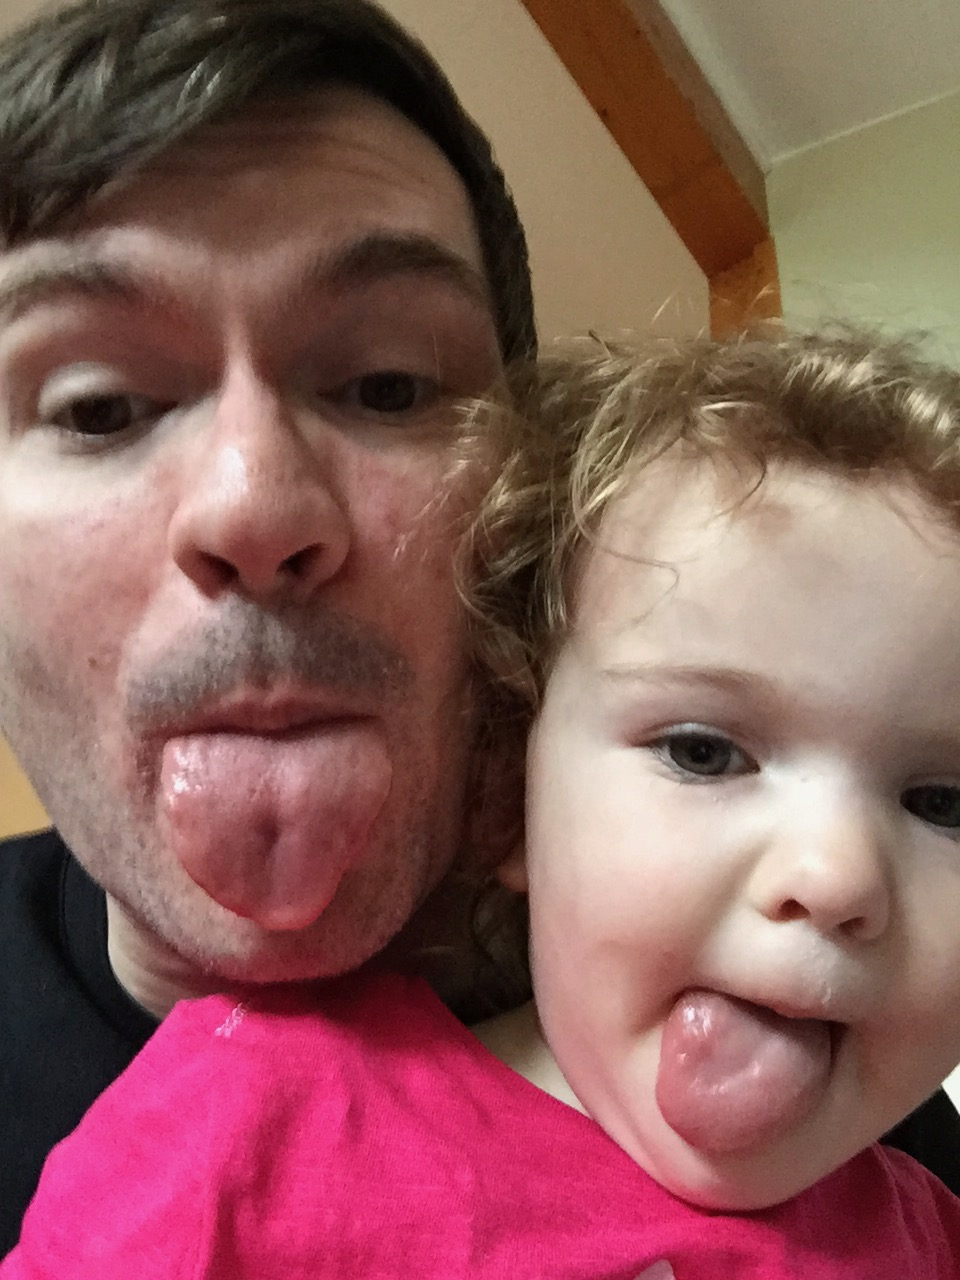 An image of a child and her father sticking out their tongues.